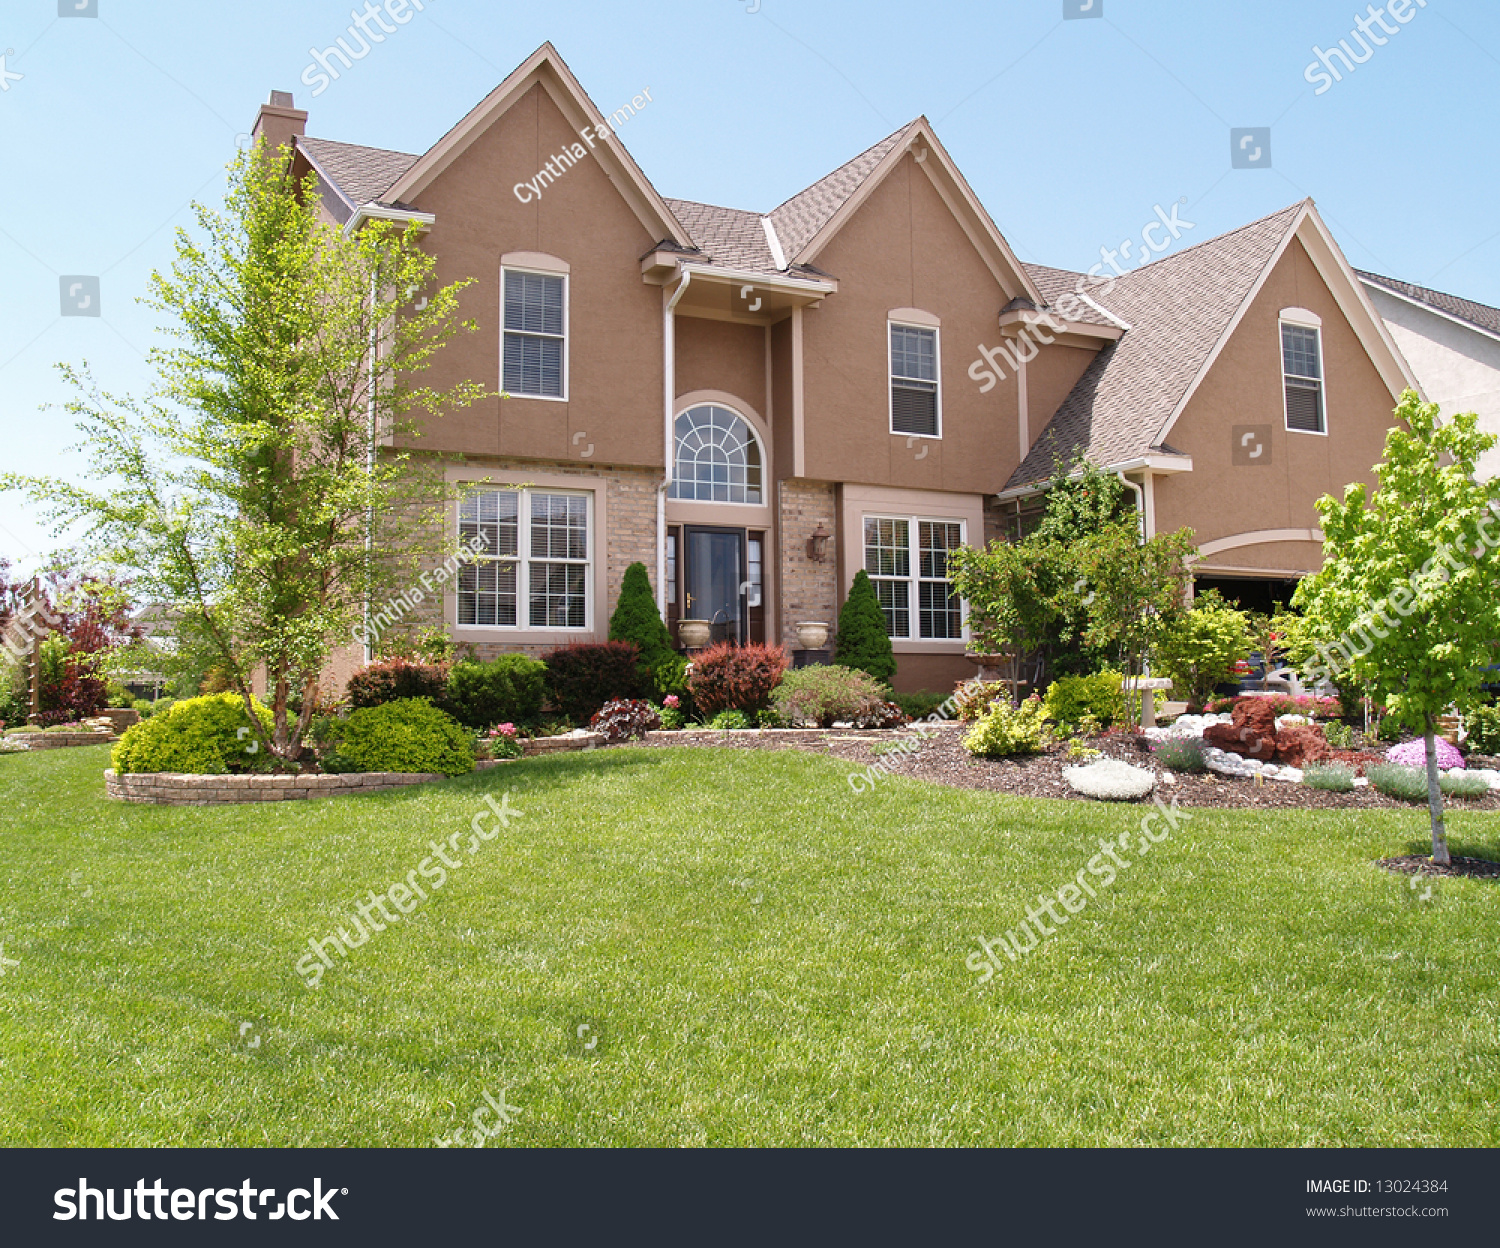 Front Exterior Modern Stucco House Stock Photo 13024384 Shutterstock